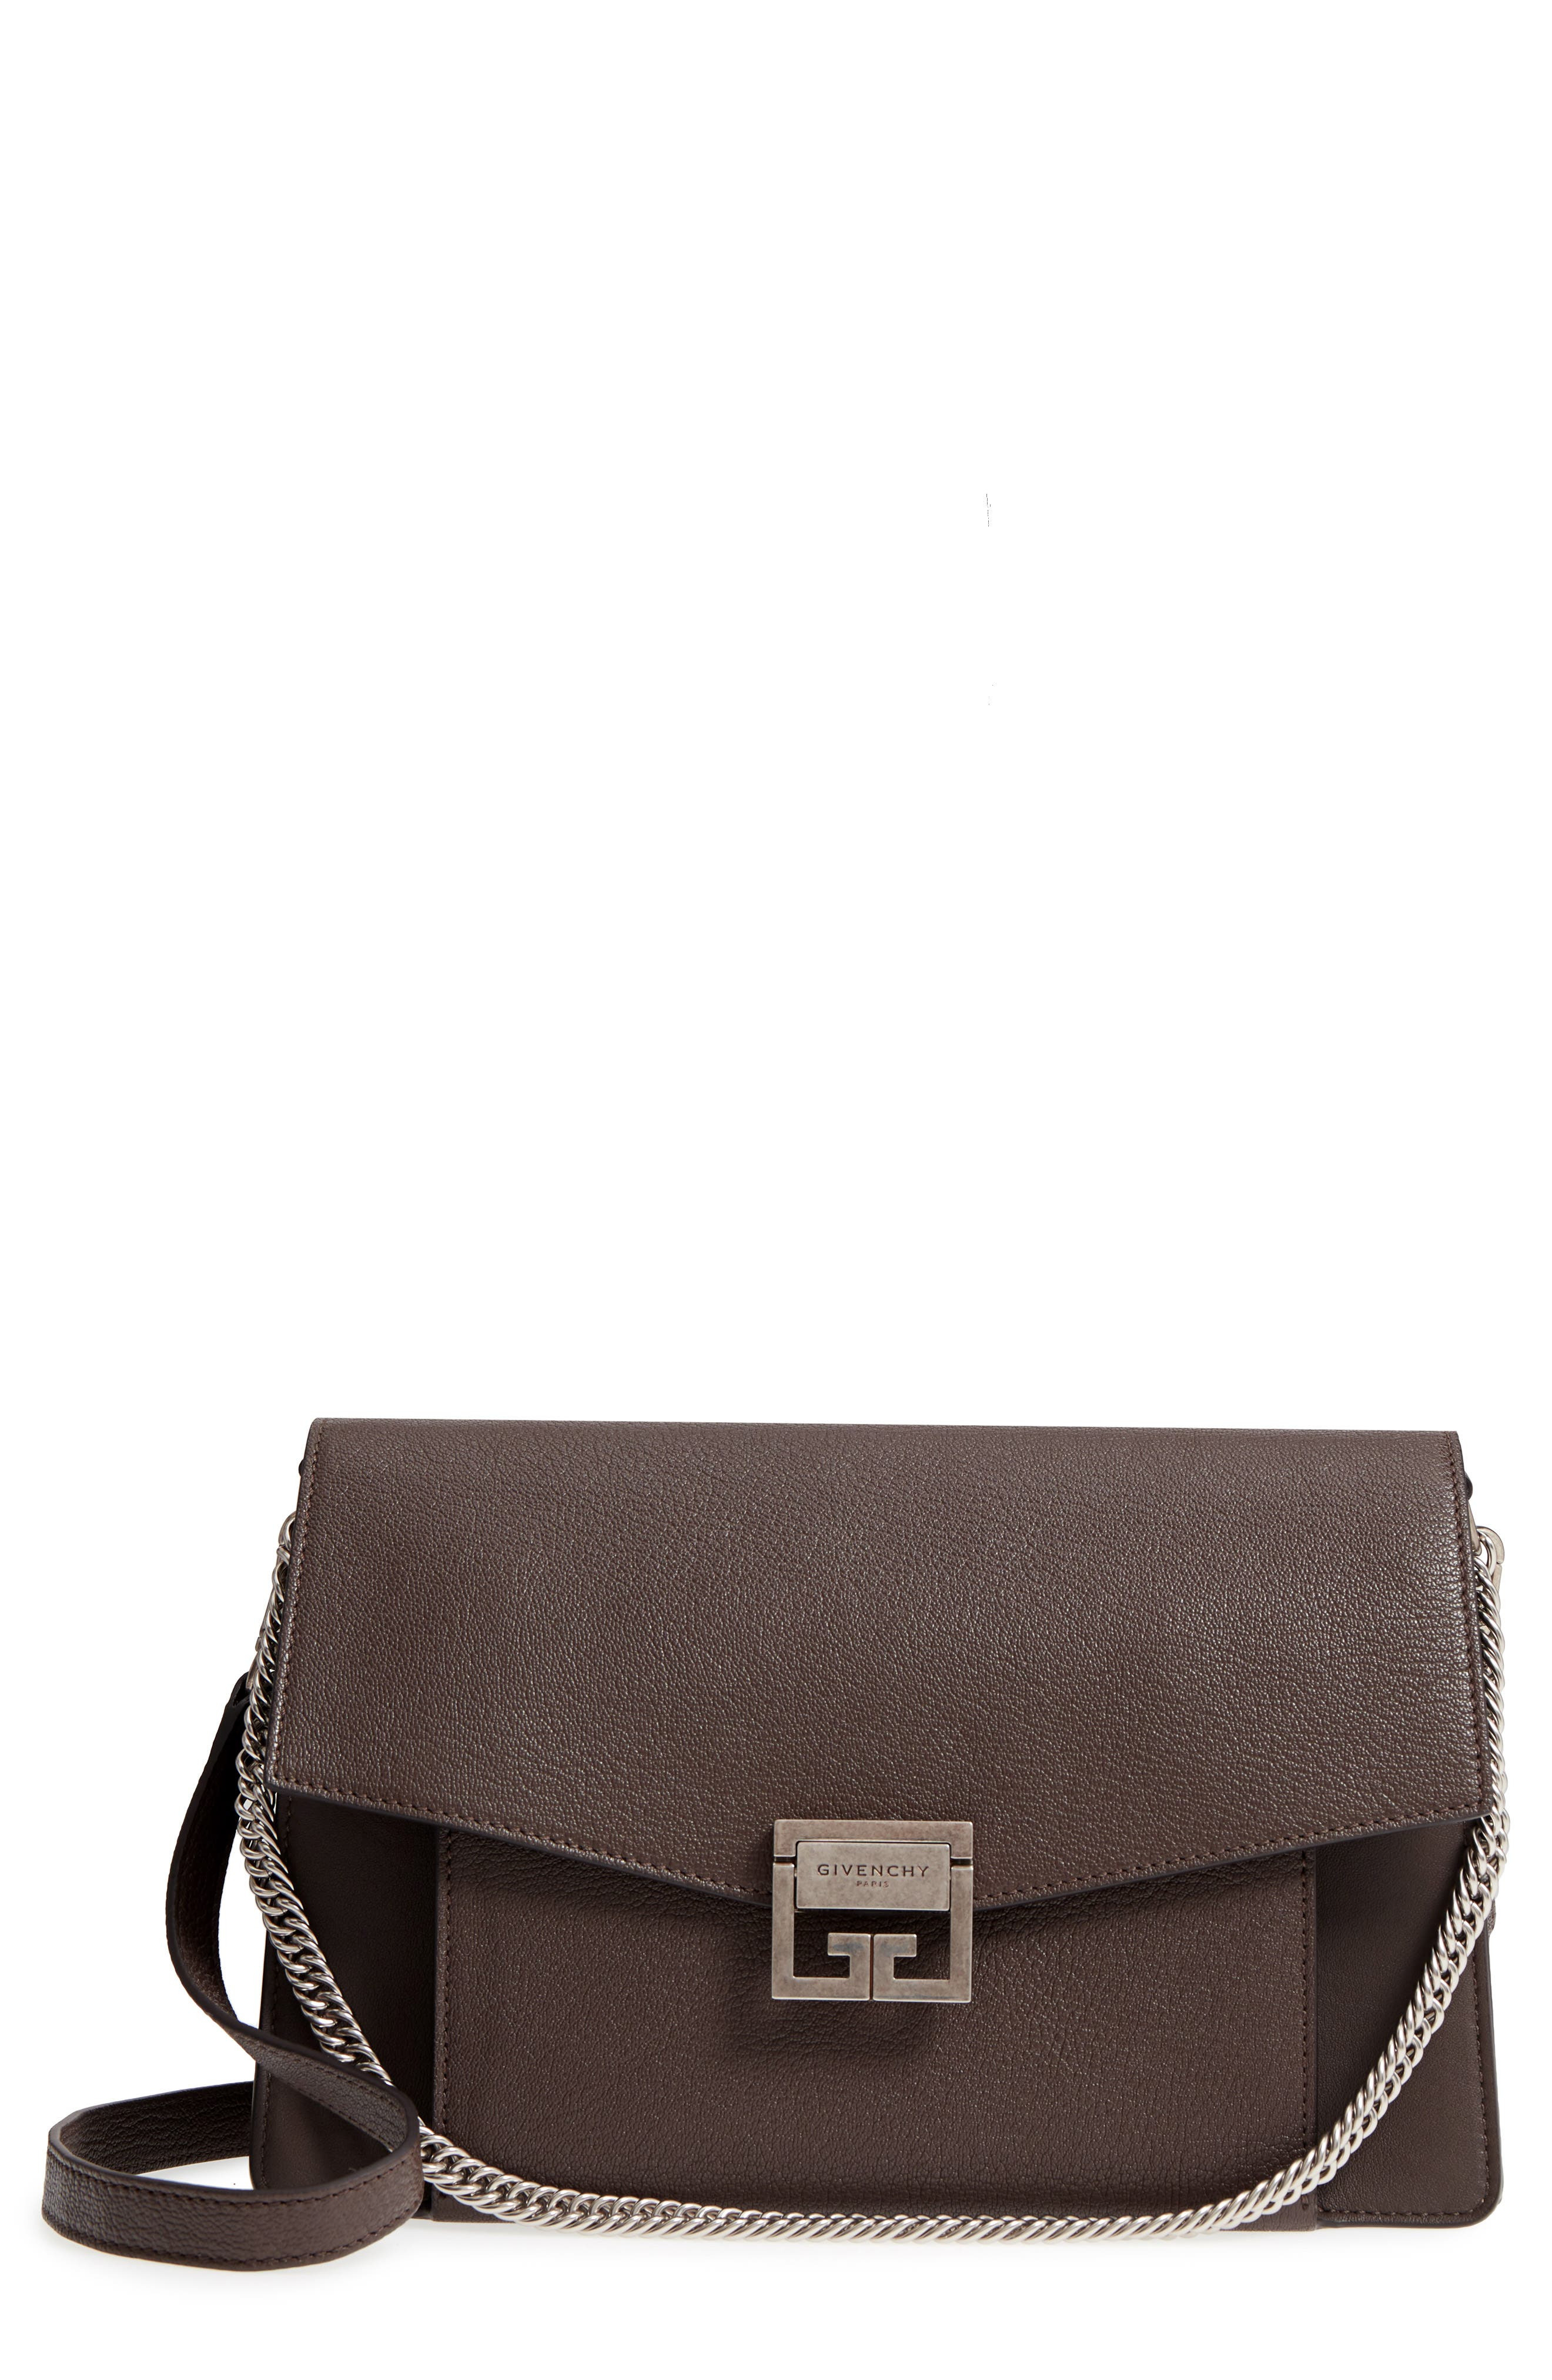 Givenchy GV3 Goatskin Leather Shoulder Bag